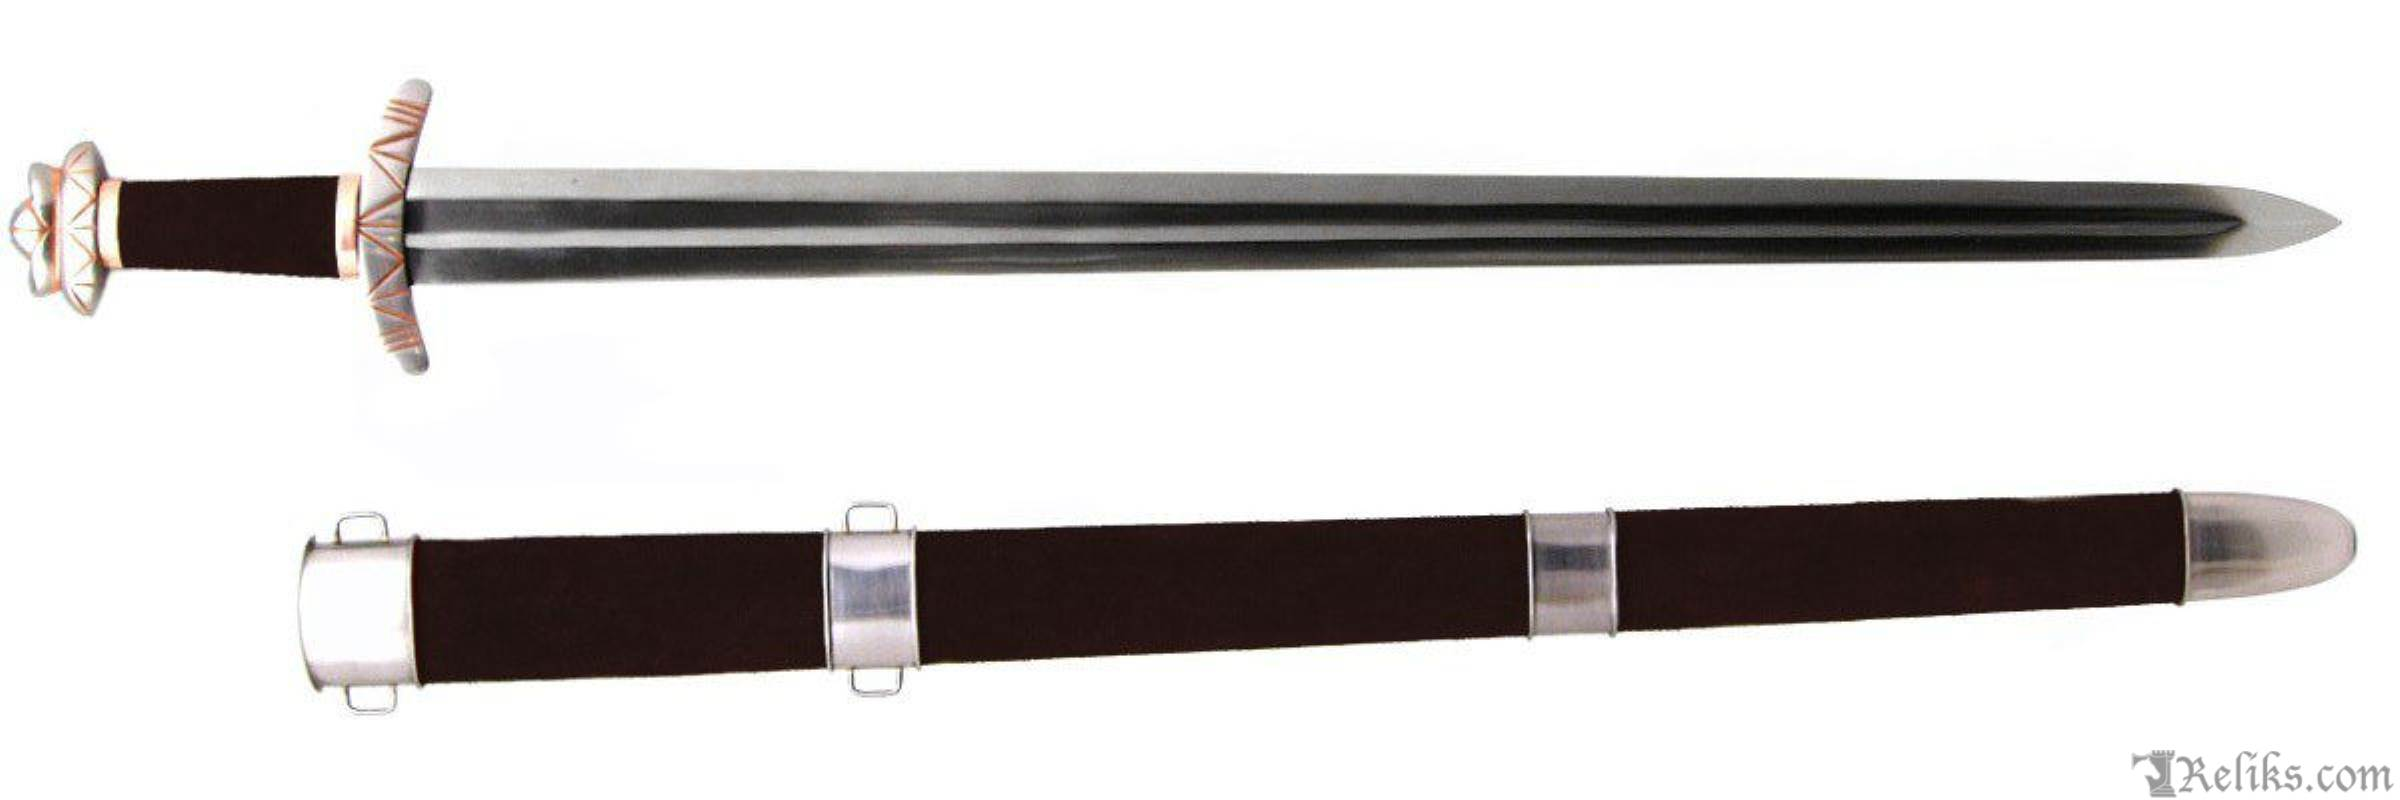 Sticklestad Viking Sword Functional European Swords Windlass Feel Free To Cut The Tip Of Make It More Close Up